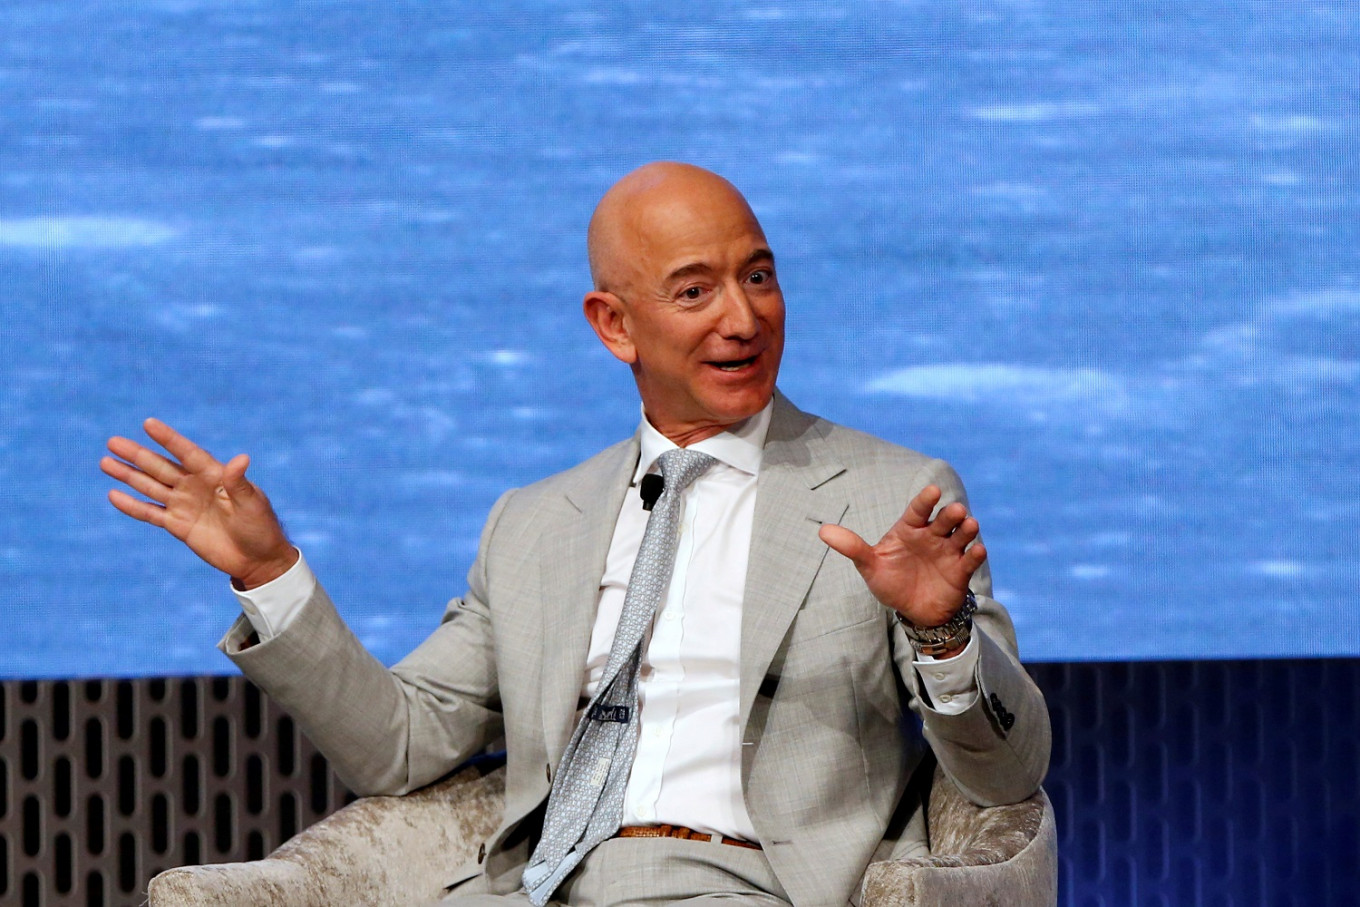 Jeff Bezos to step down as Amazon CEO - Business - The Jakarta Post